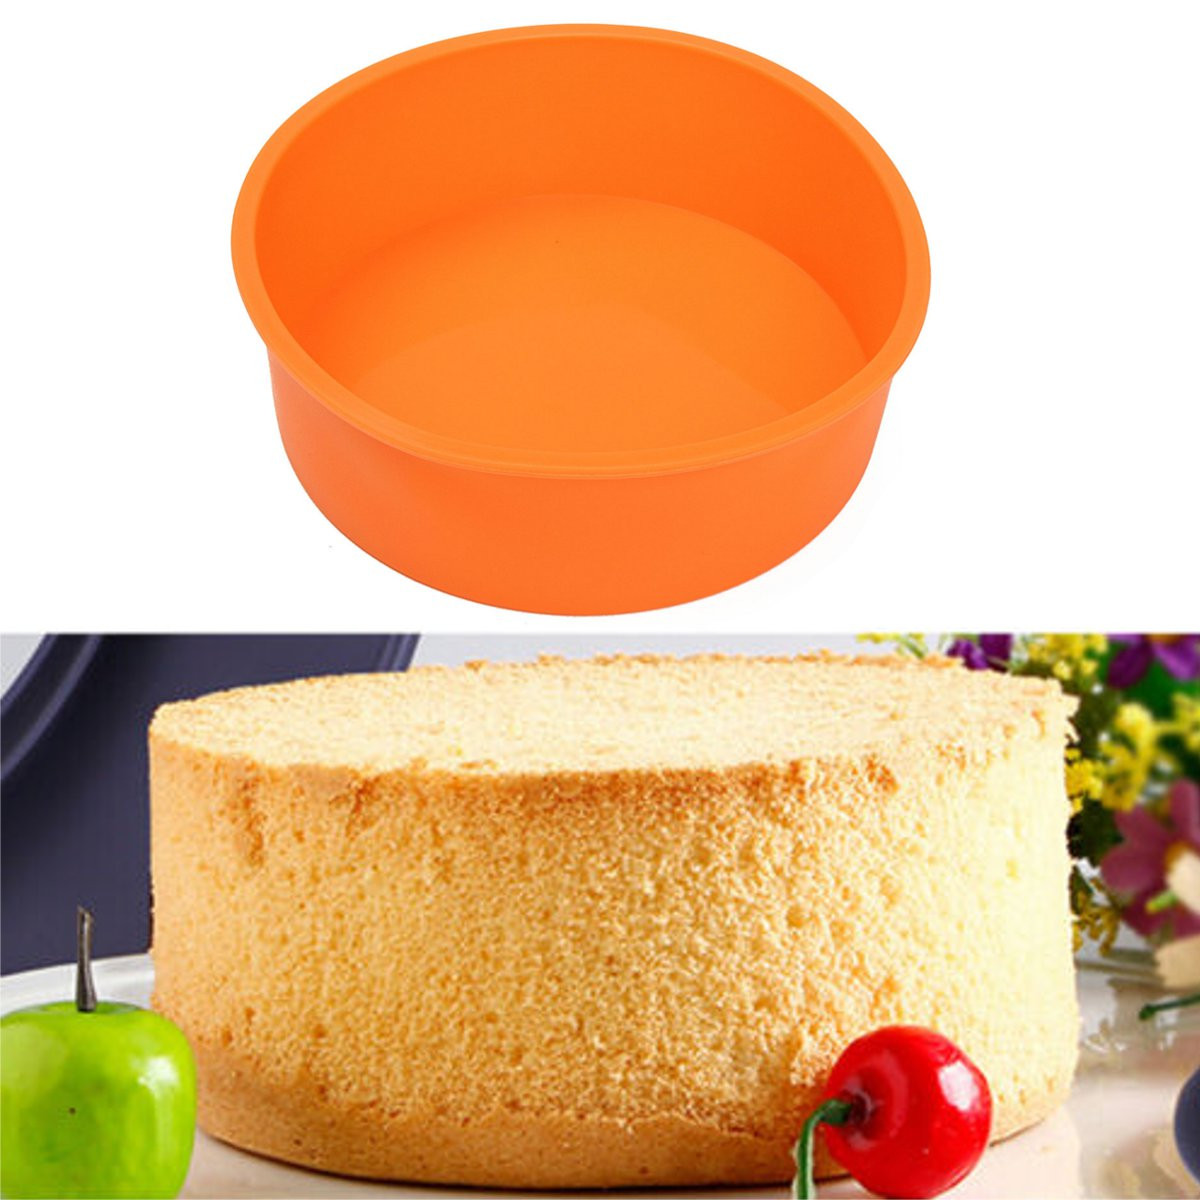 Meigar 7 Inches Round Silicone Cake Mold Pan, Muffin Pizza Pastry Baking Tray Mould Cake Pan Baking Mold, BPA Free, Non-Stick European-Grade Silicone